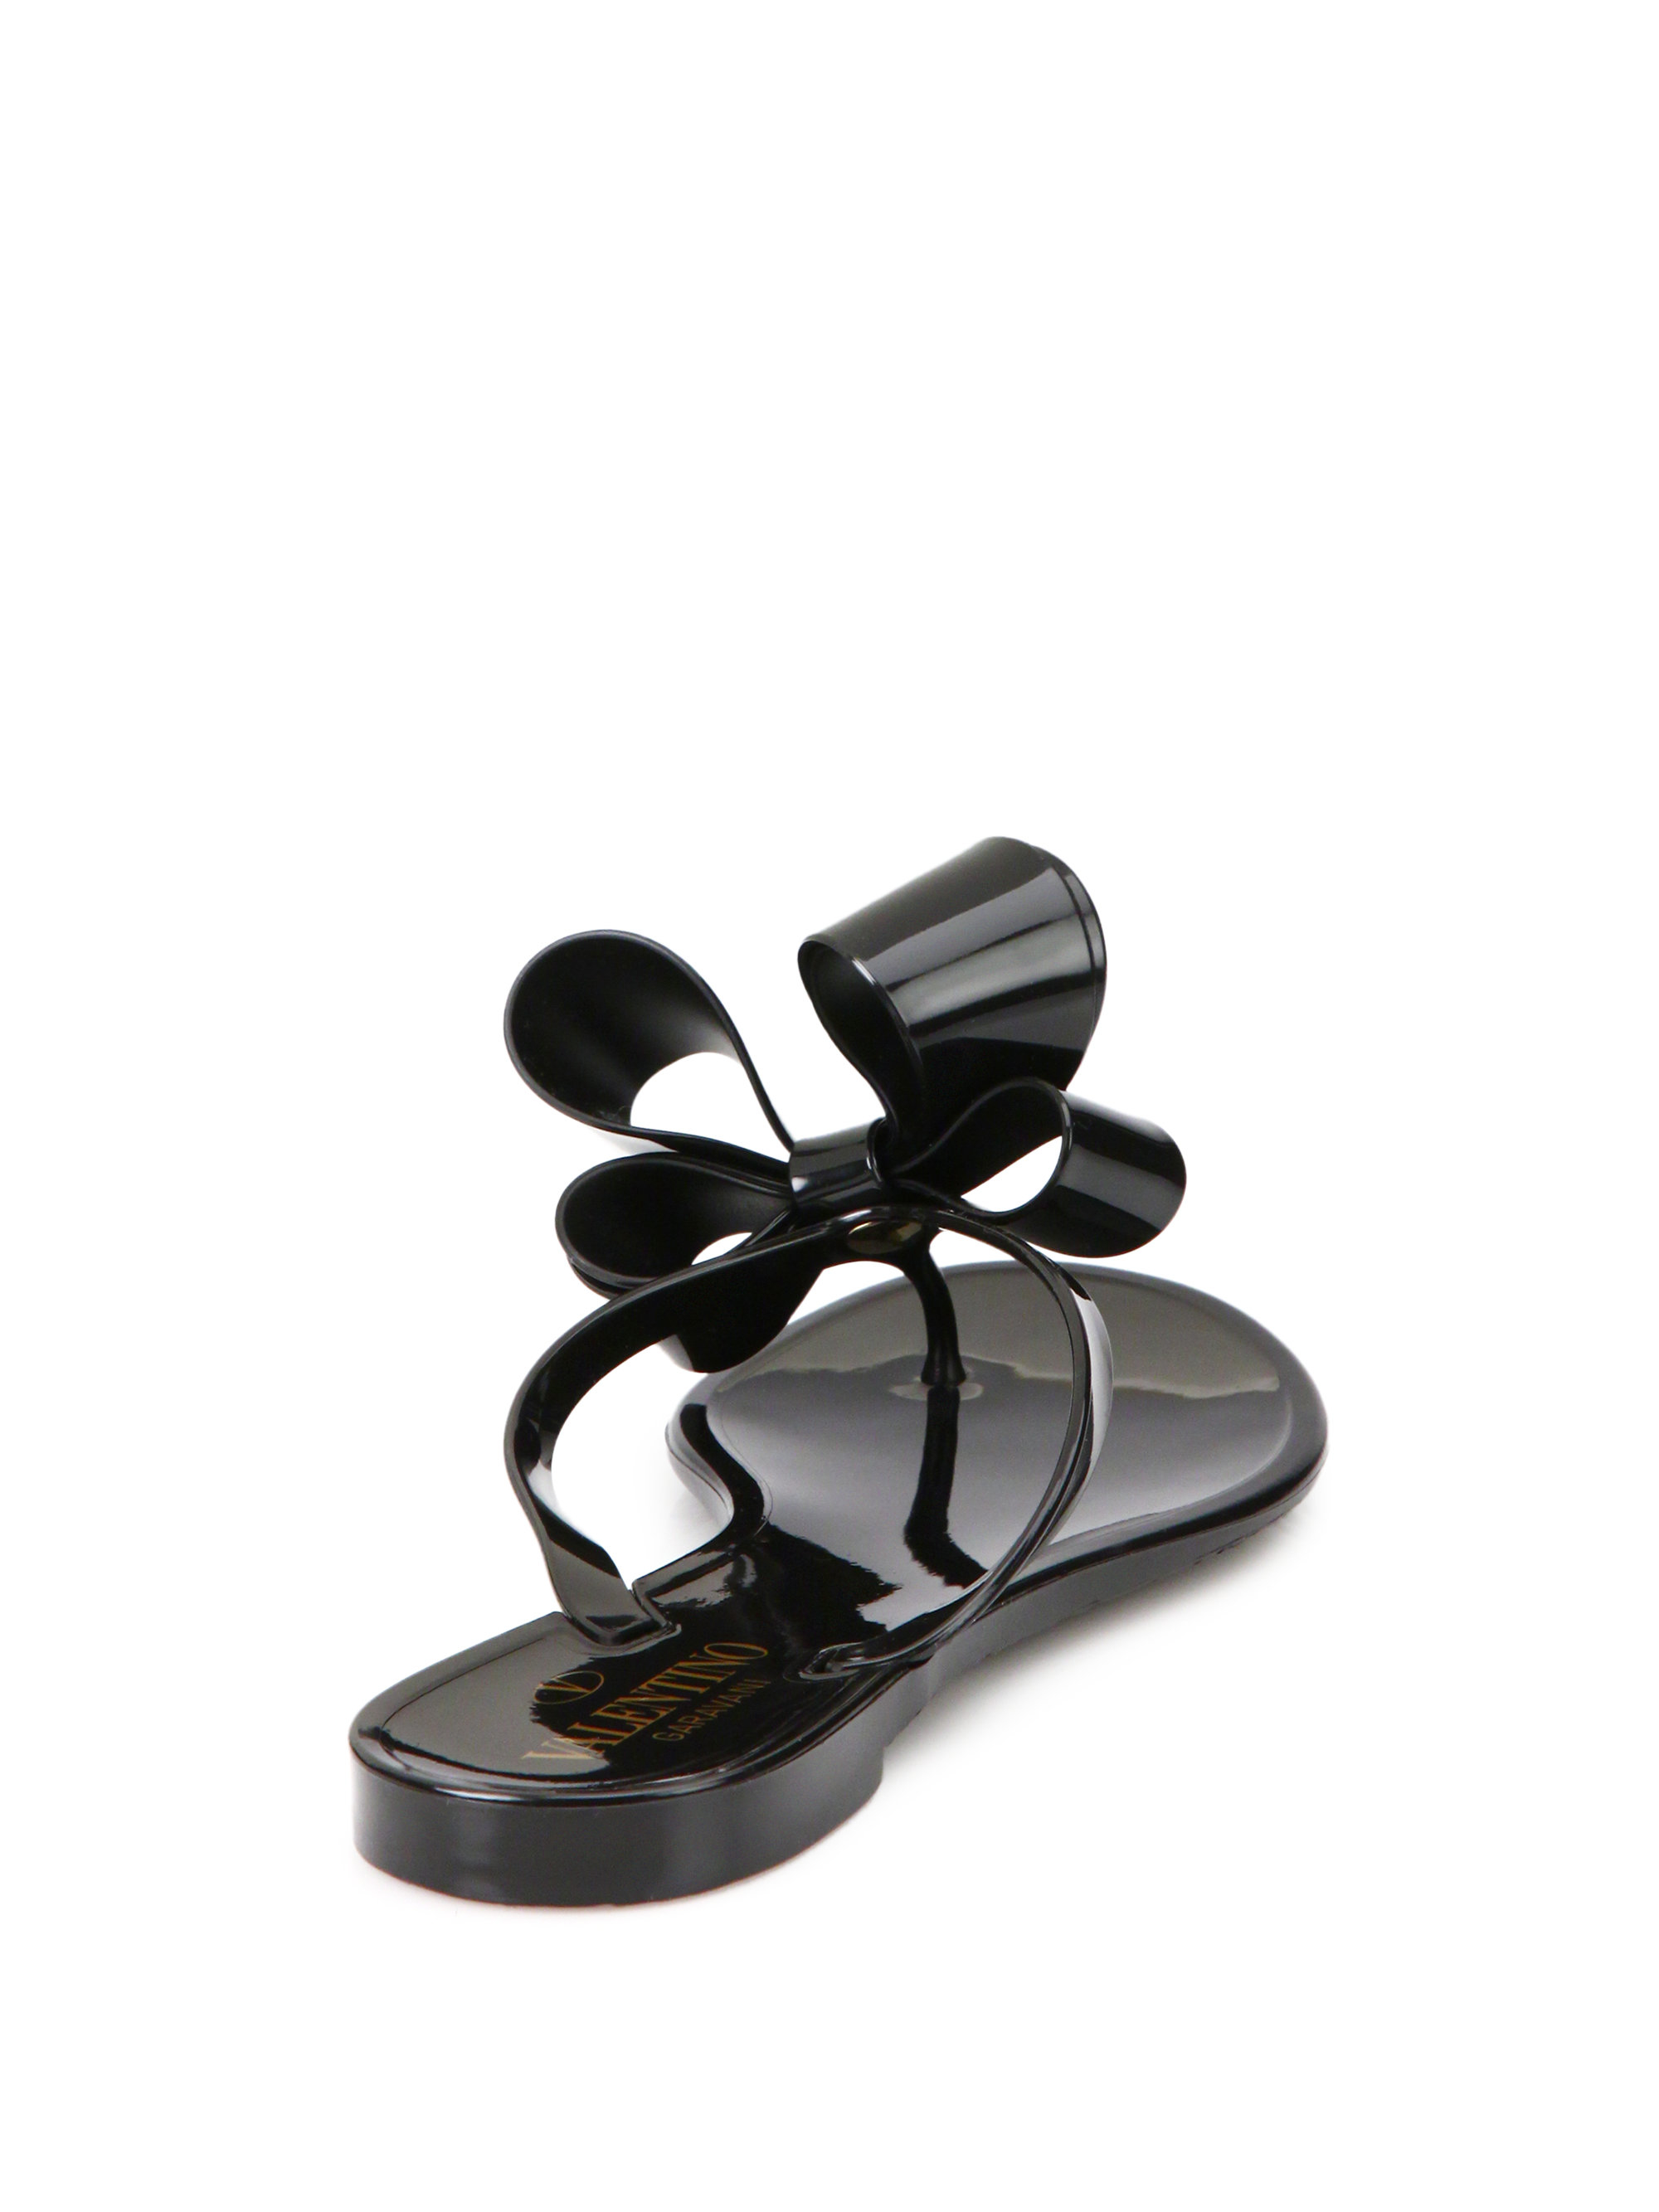 Valentino Rubber Couture Bow Jelly Flip Flops In Black - Lyst-6250